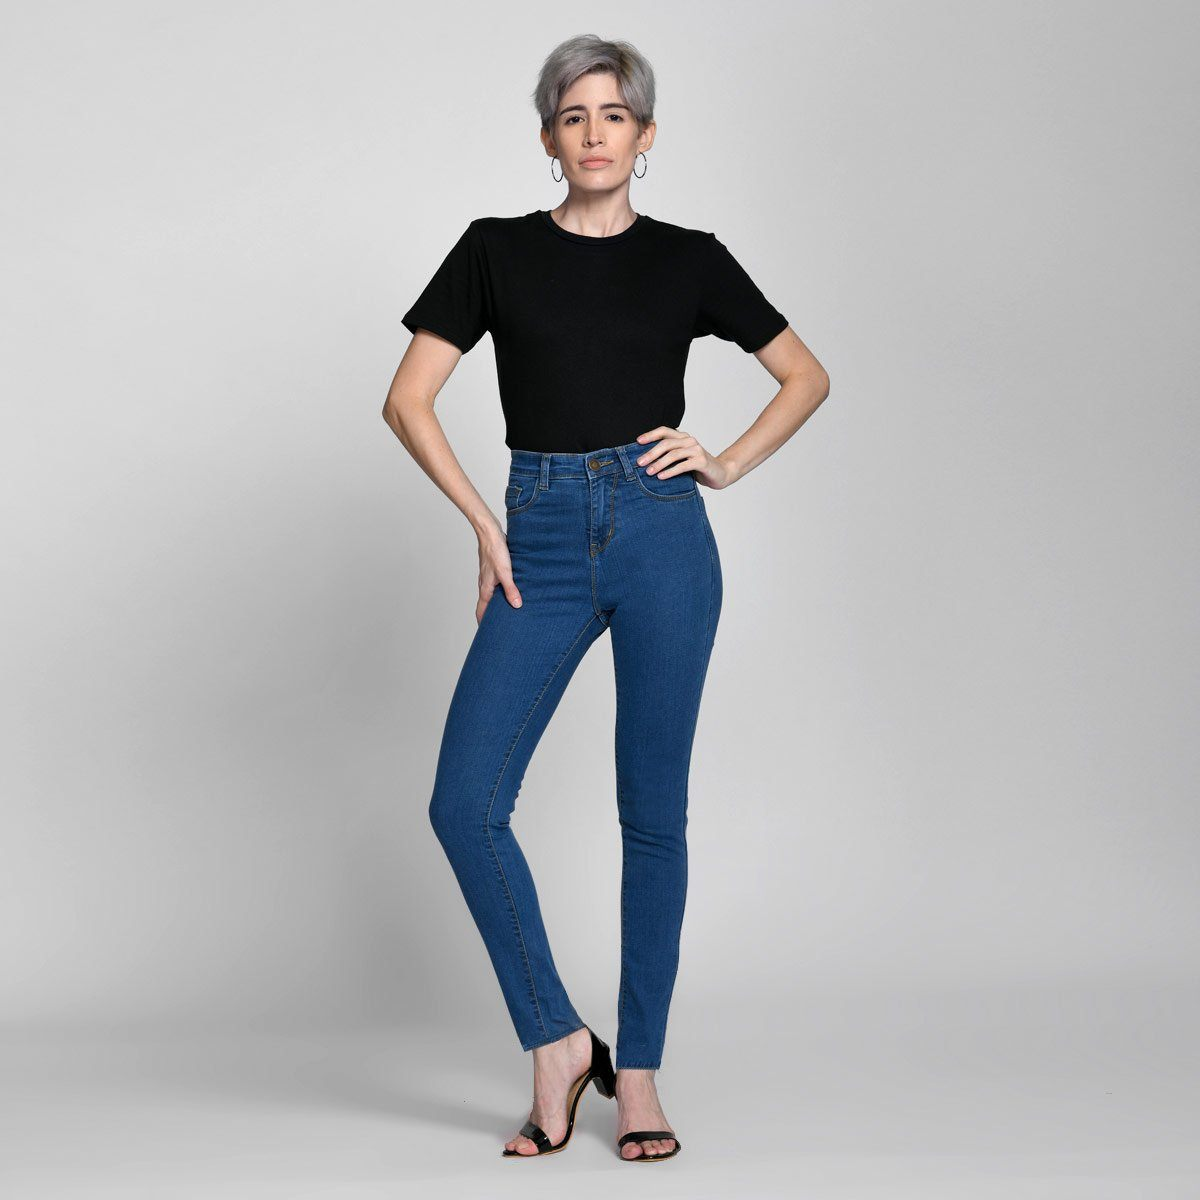 Skinny Original Blue High Waist Jeans Jeans by Madish